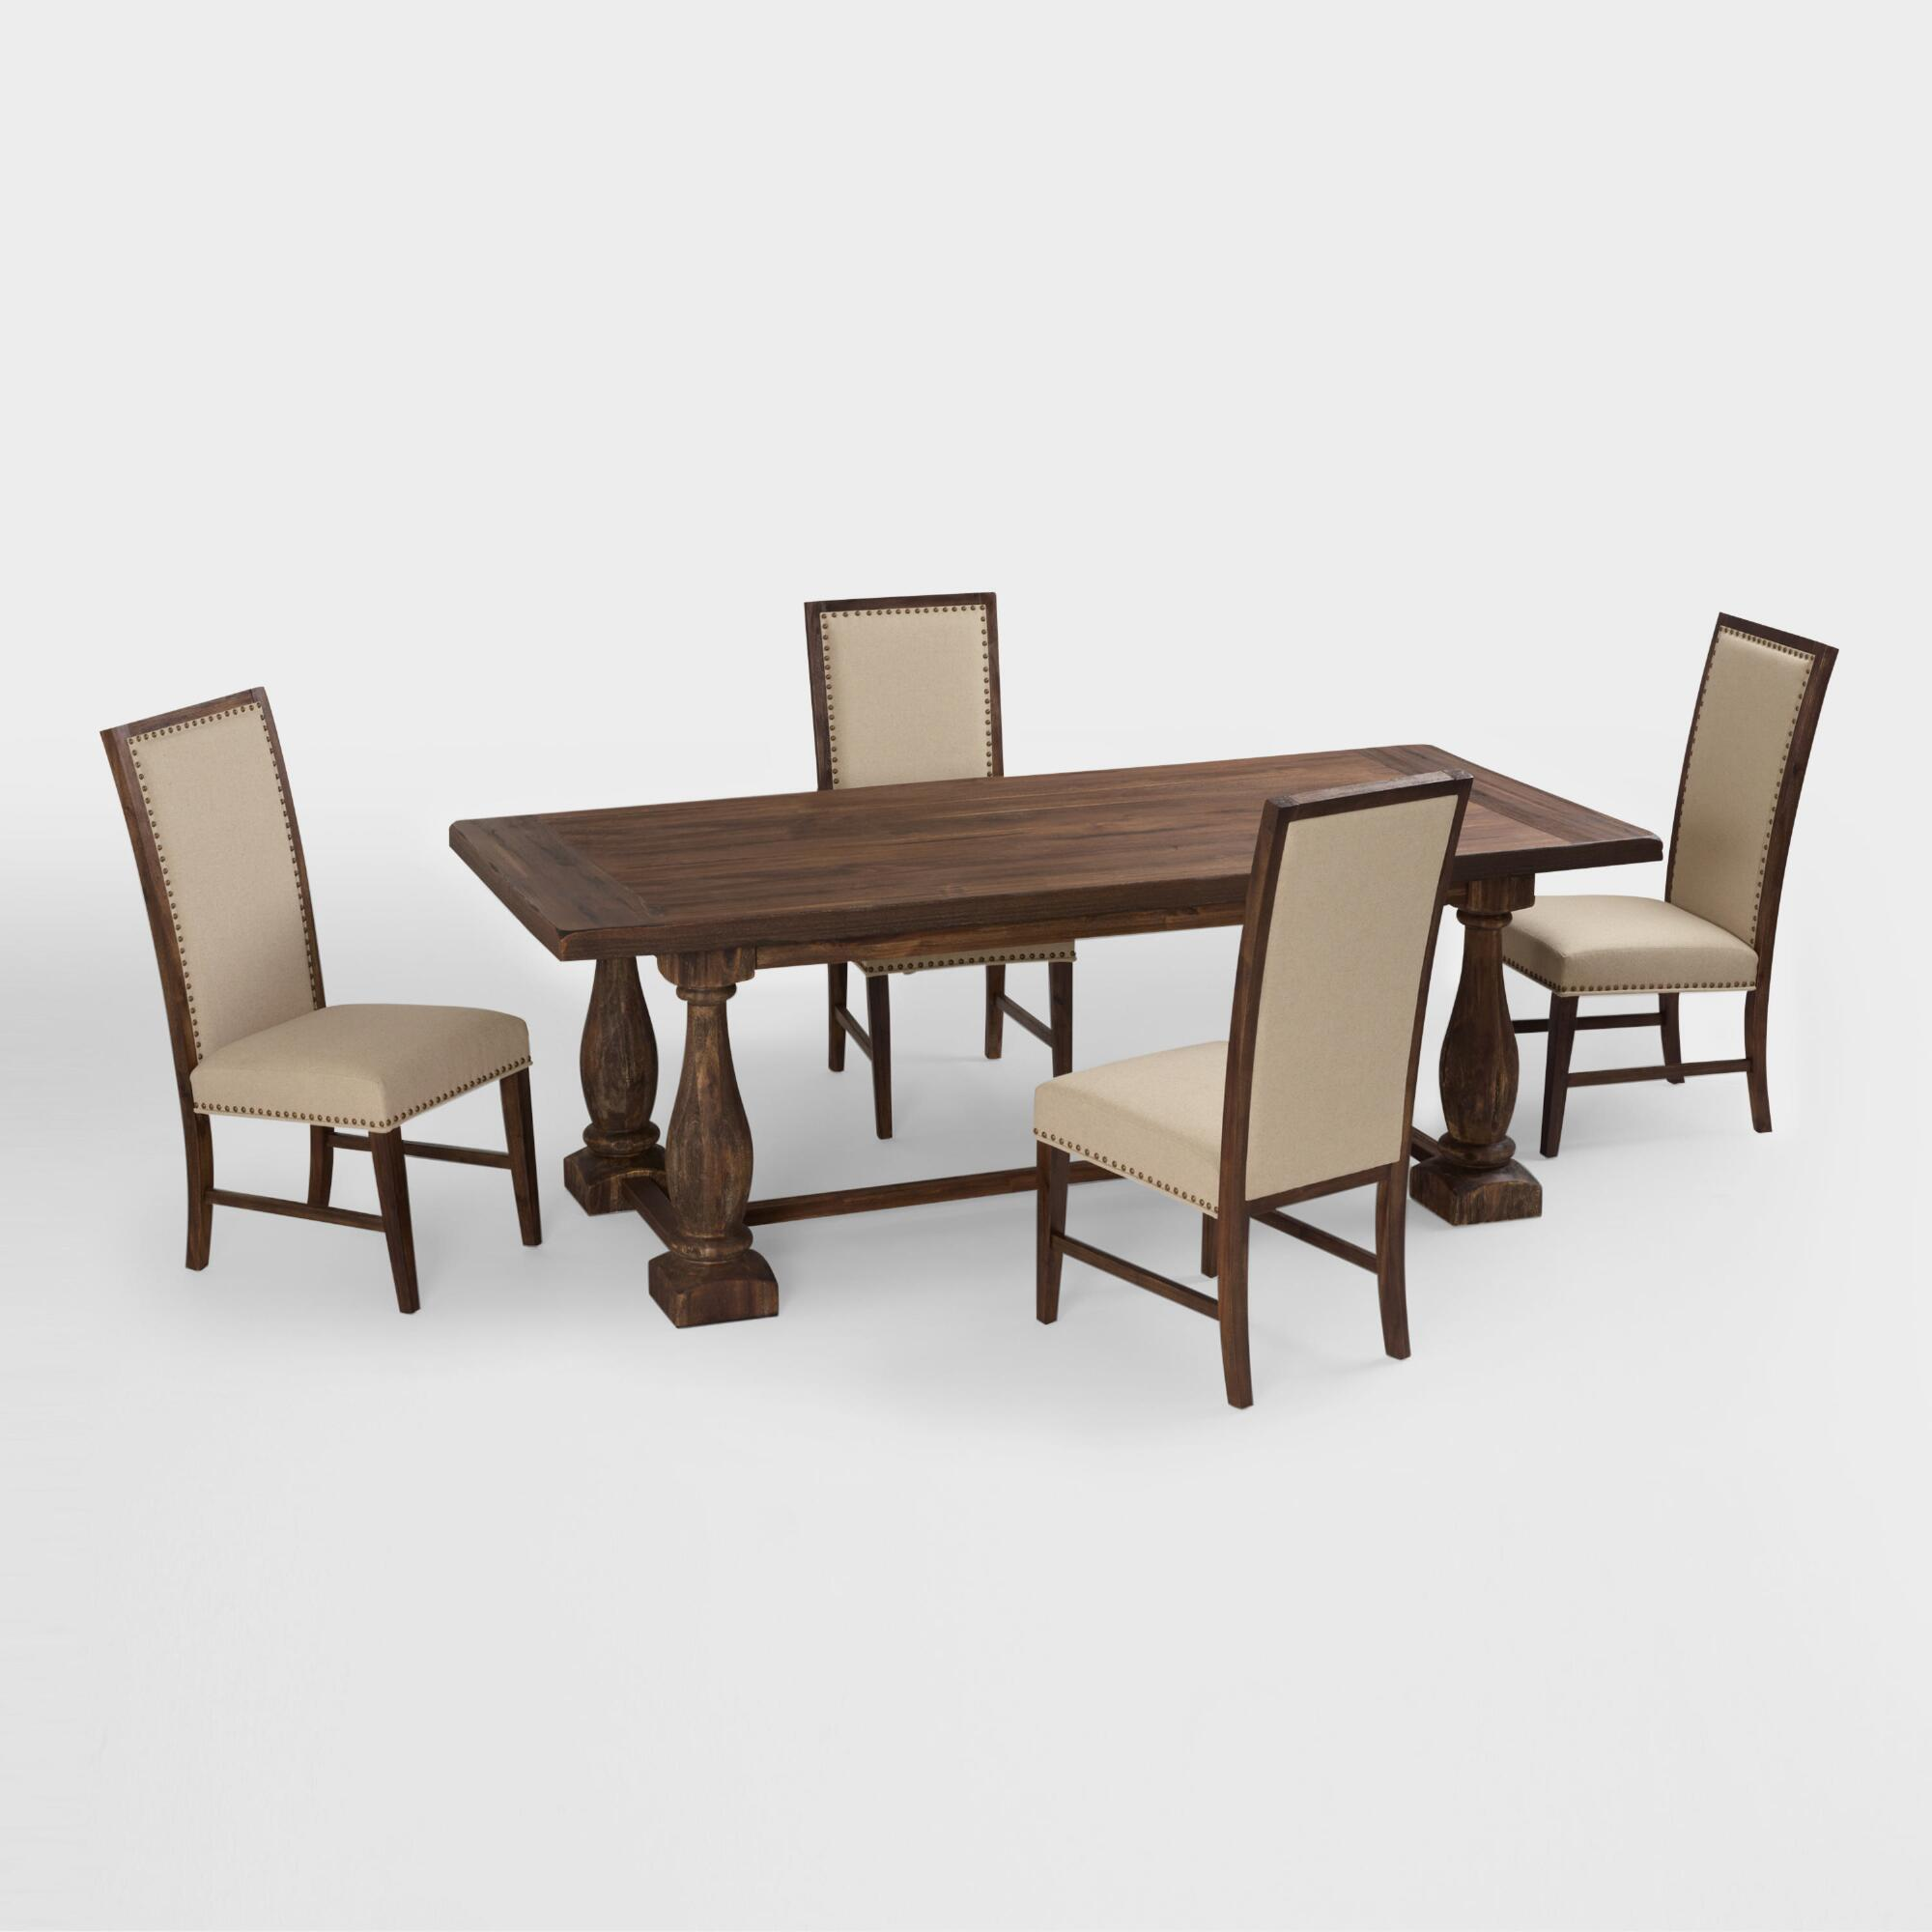 Fresh round dining table with chairs that tuck under for Dining room table sets